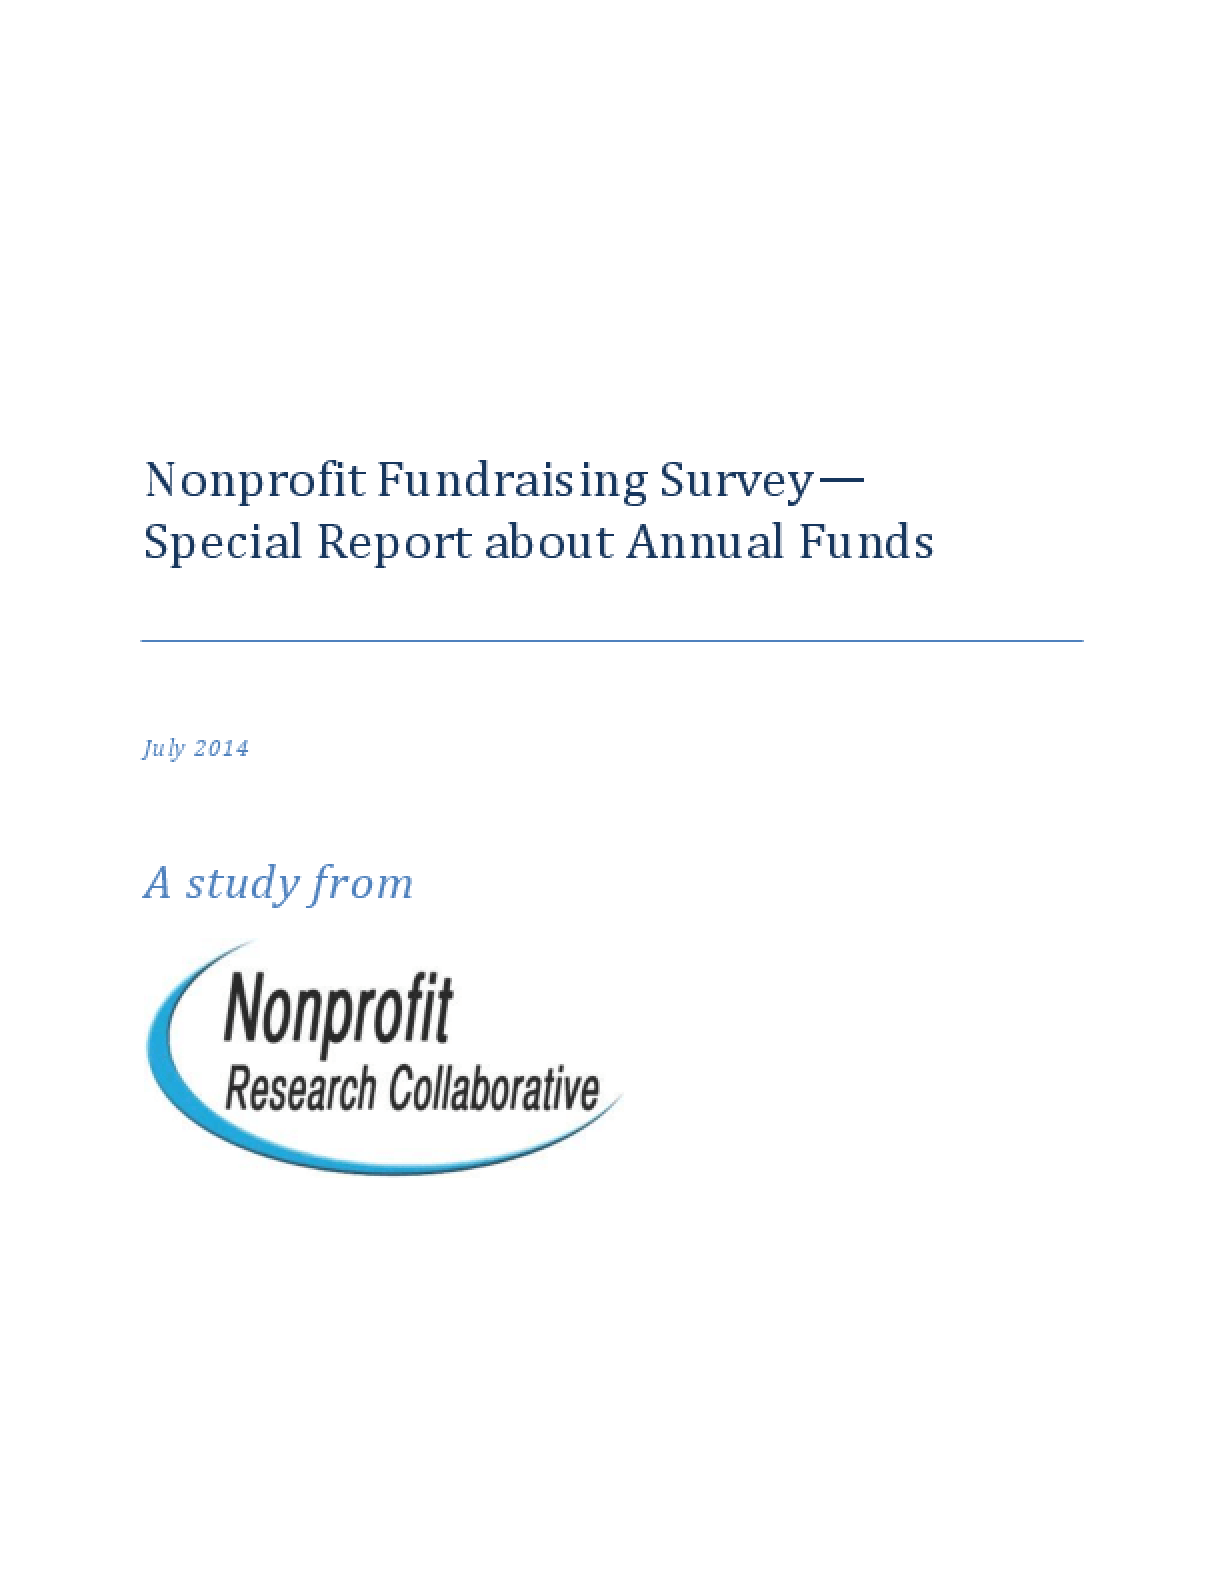 Nonprofit Fundraising Survey: Special Report About Annual Funds